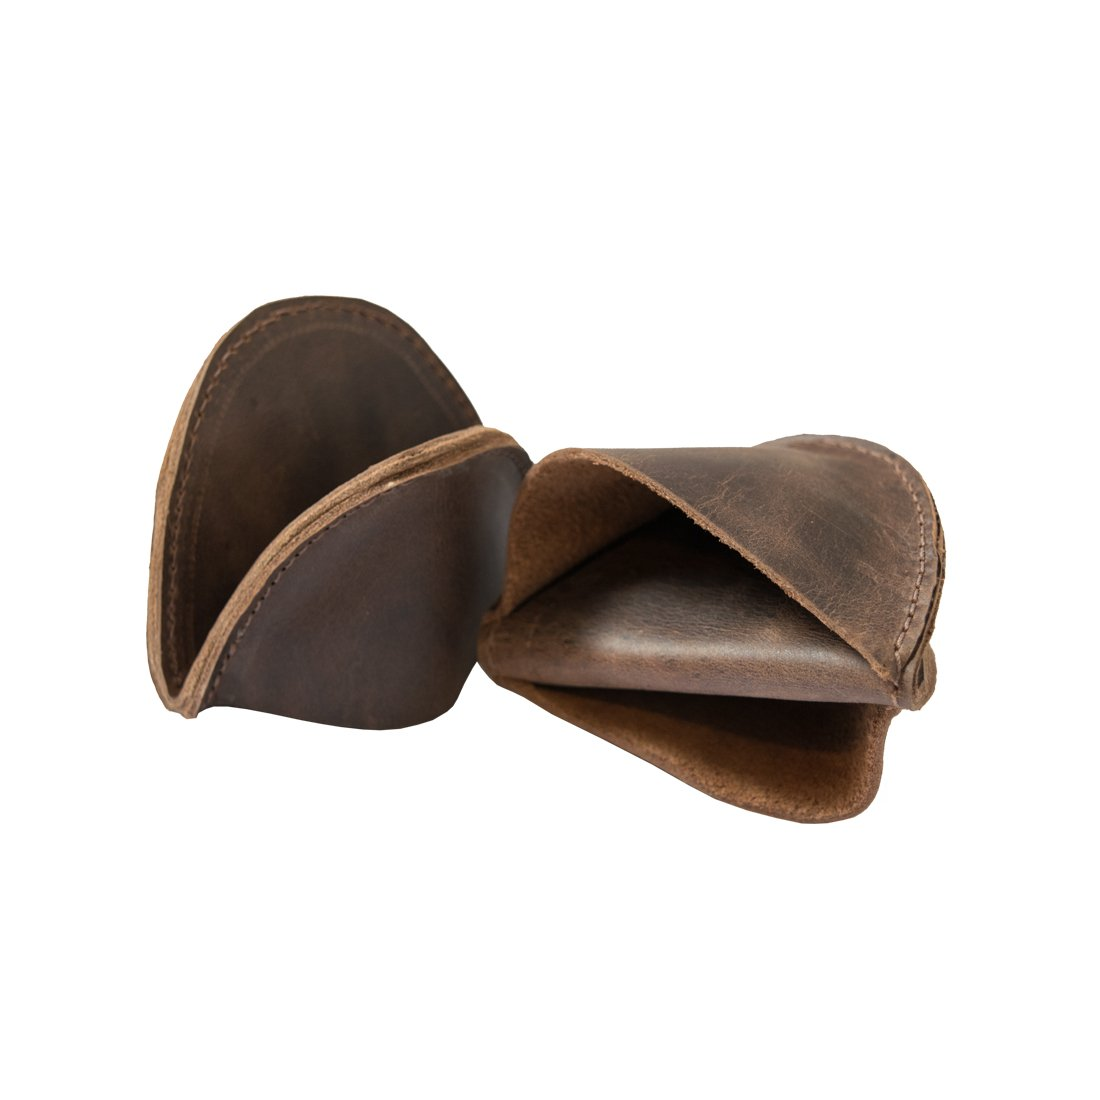 Leather Pot Holder Mini Oven Mitt Oven Cooking Pinch Grips (2-pack) Handmade by Hide & Drink :: Bourbon Brown